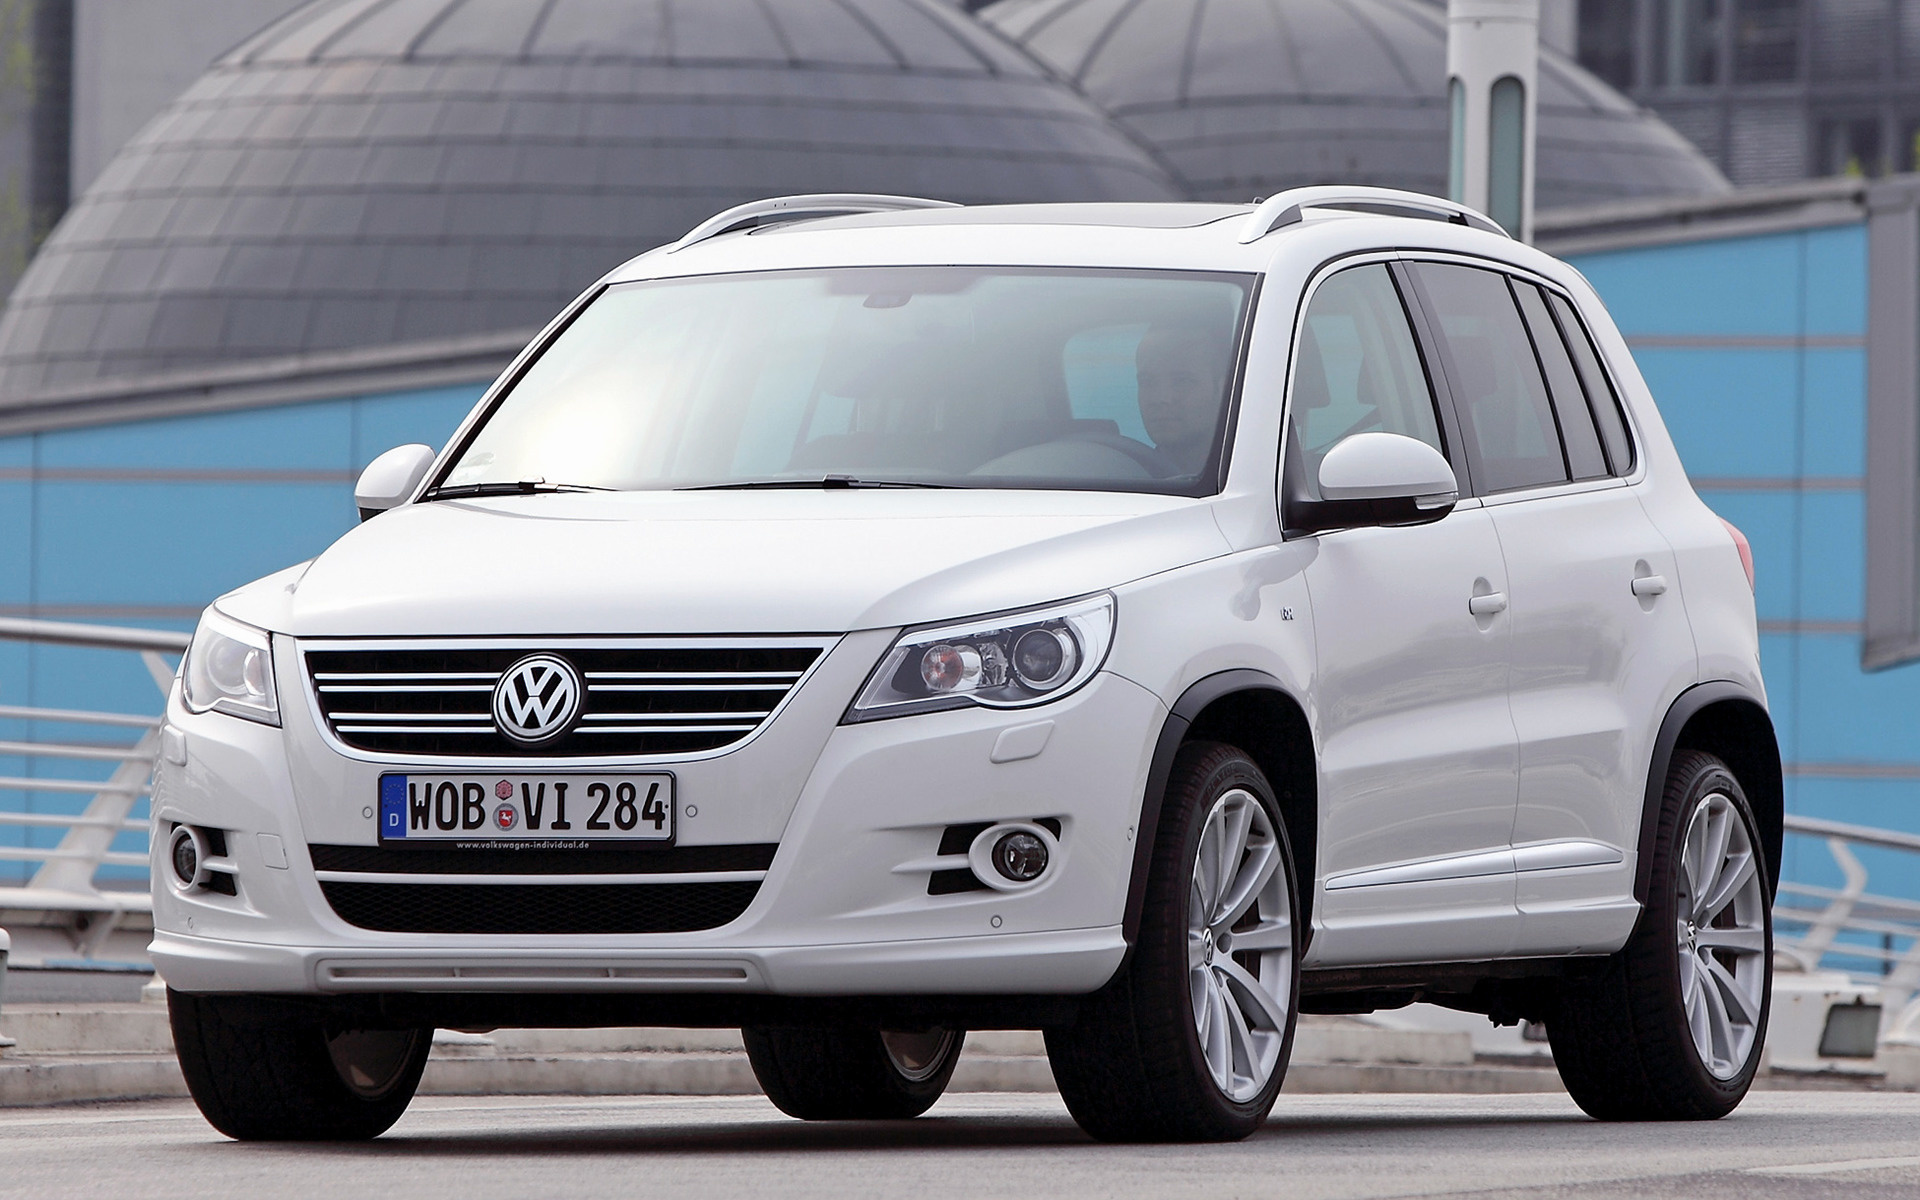 2009 Volkswagen Tiguan R Line Wallpapers And Hd Images